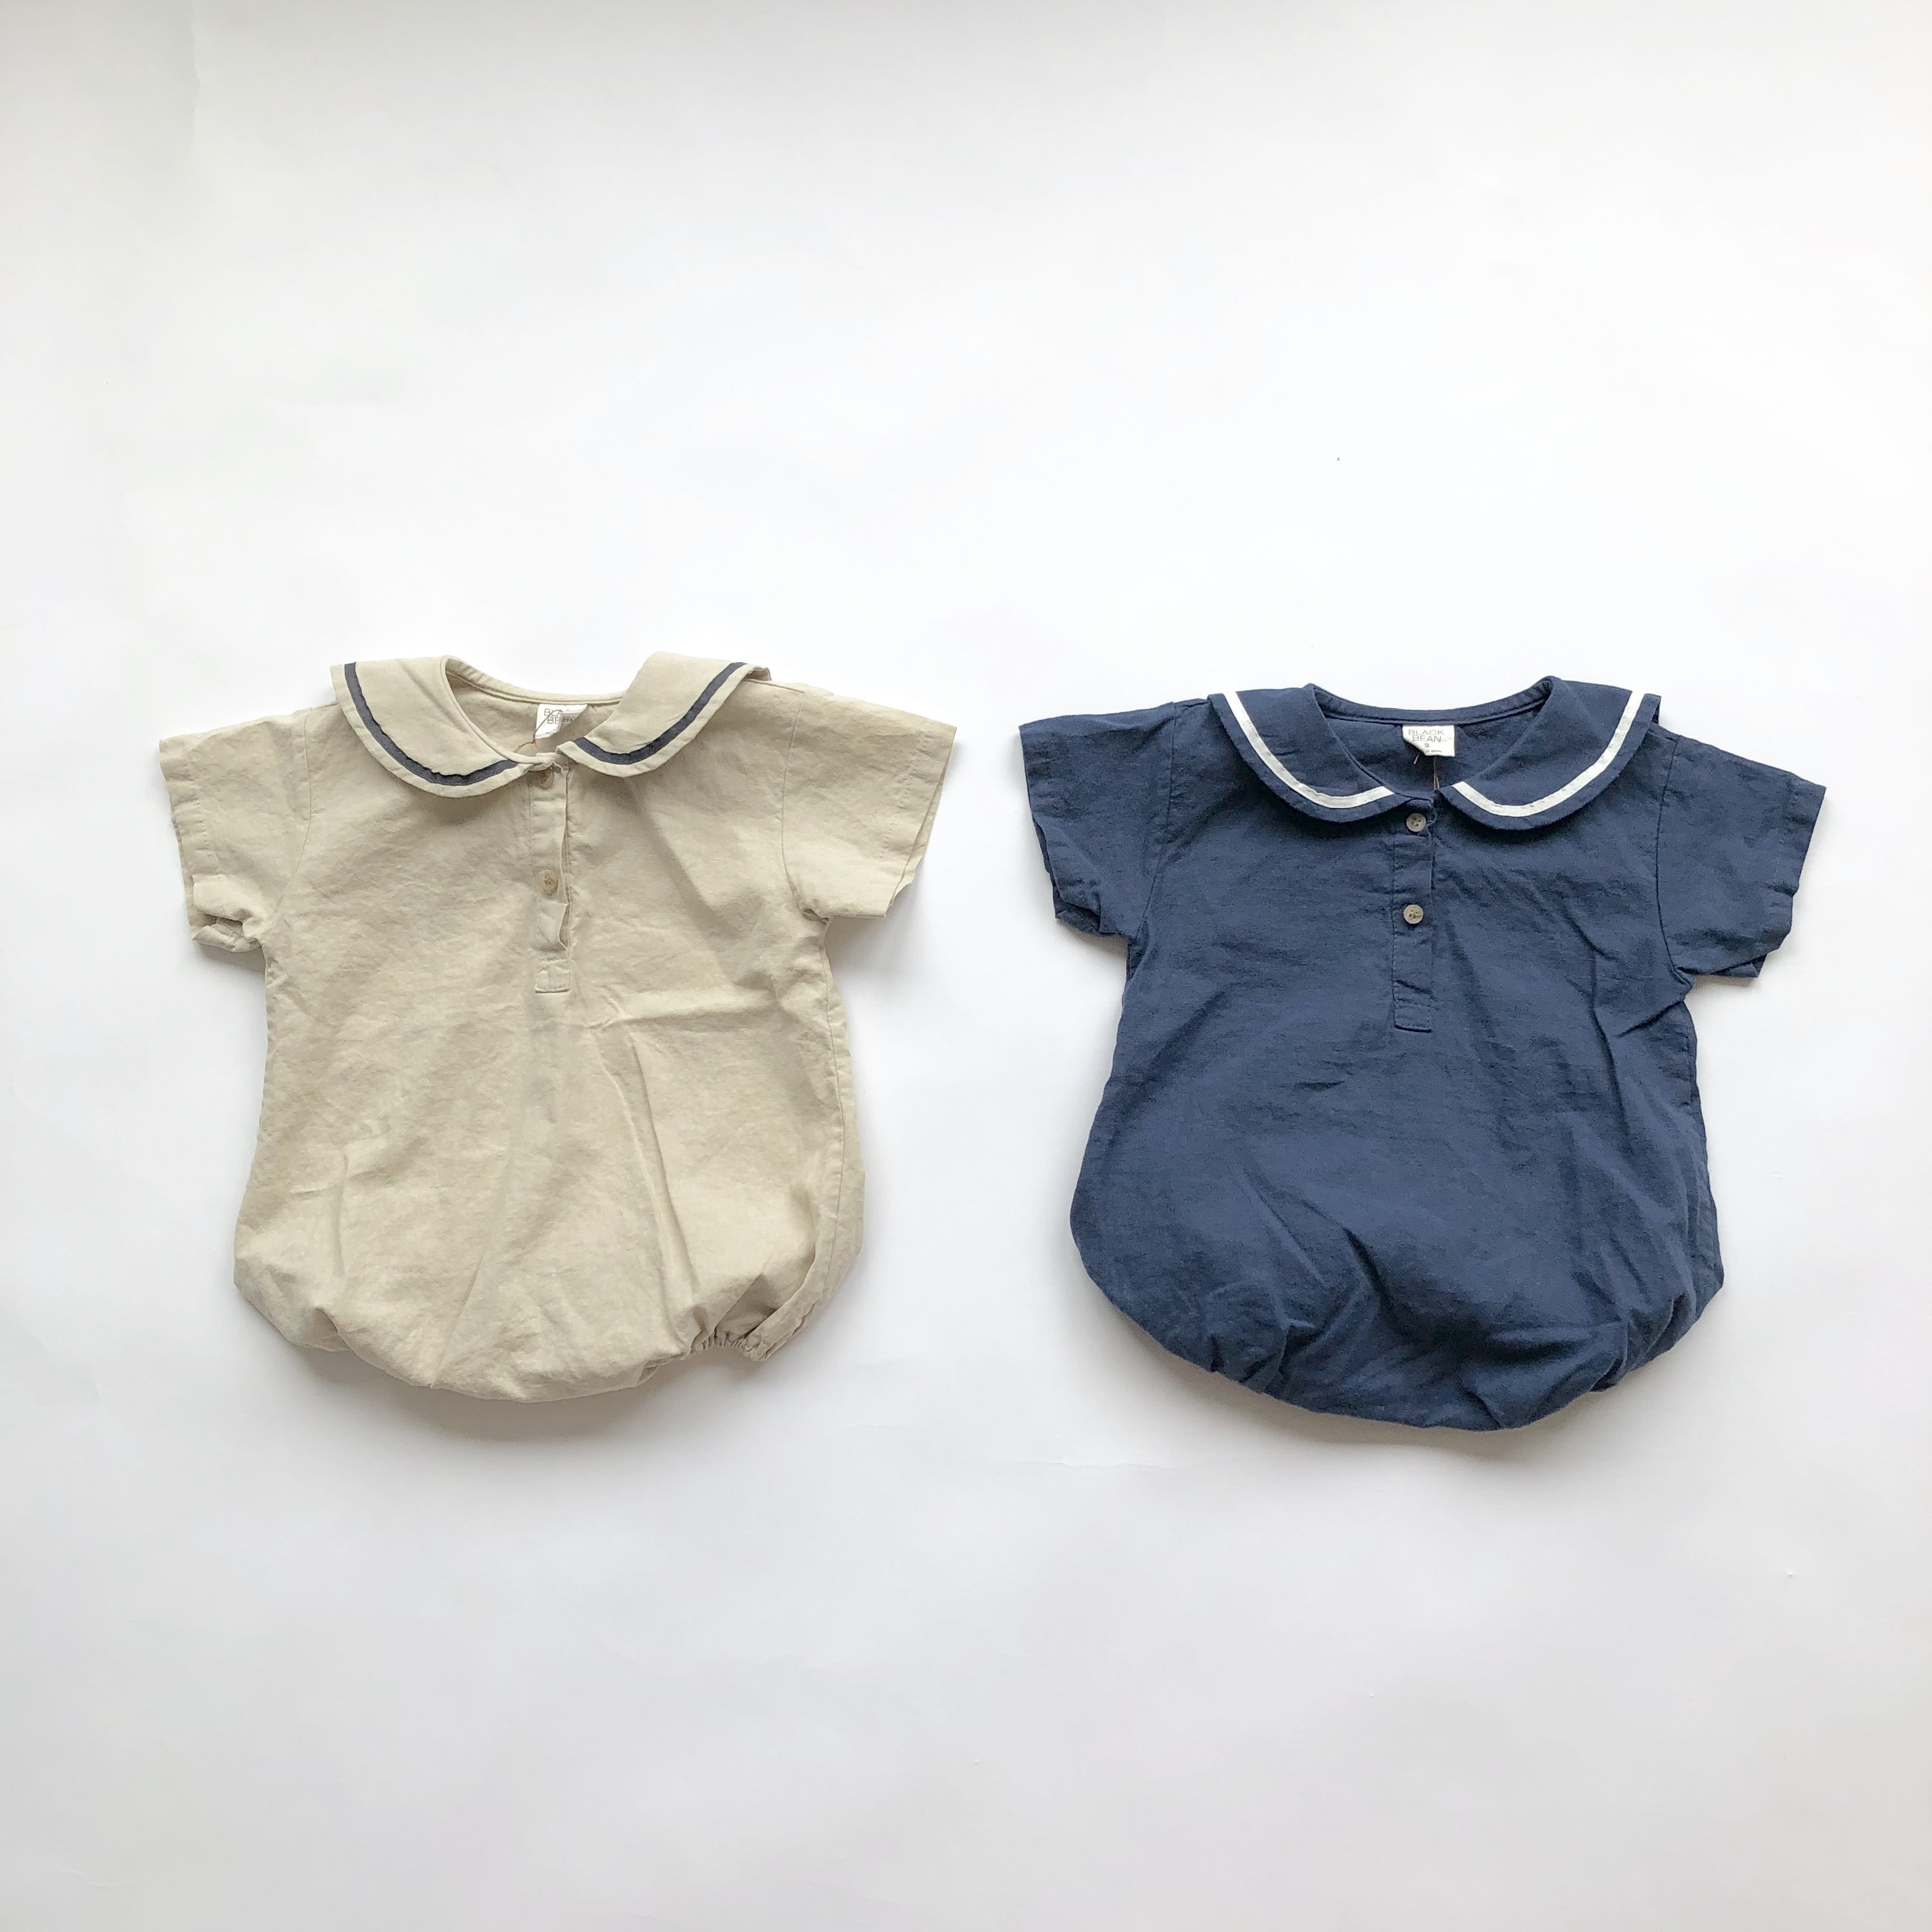 《 175 》Re : stock   Summer Sailor rompers